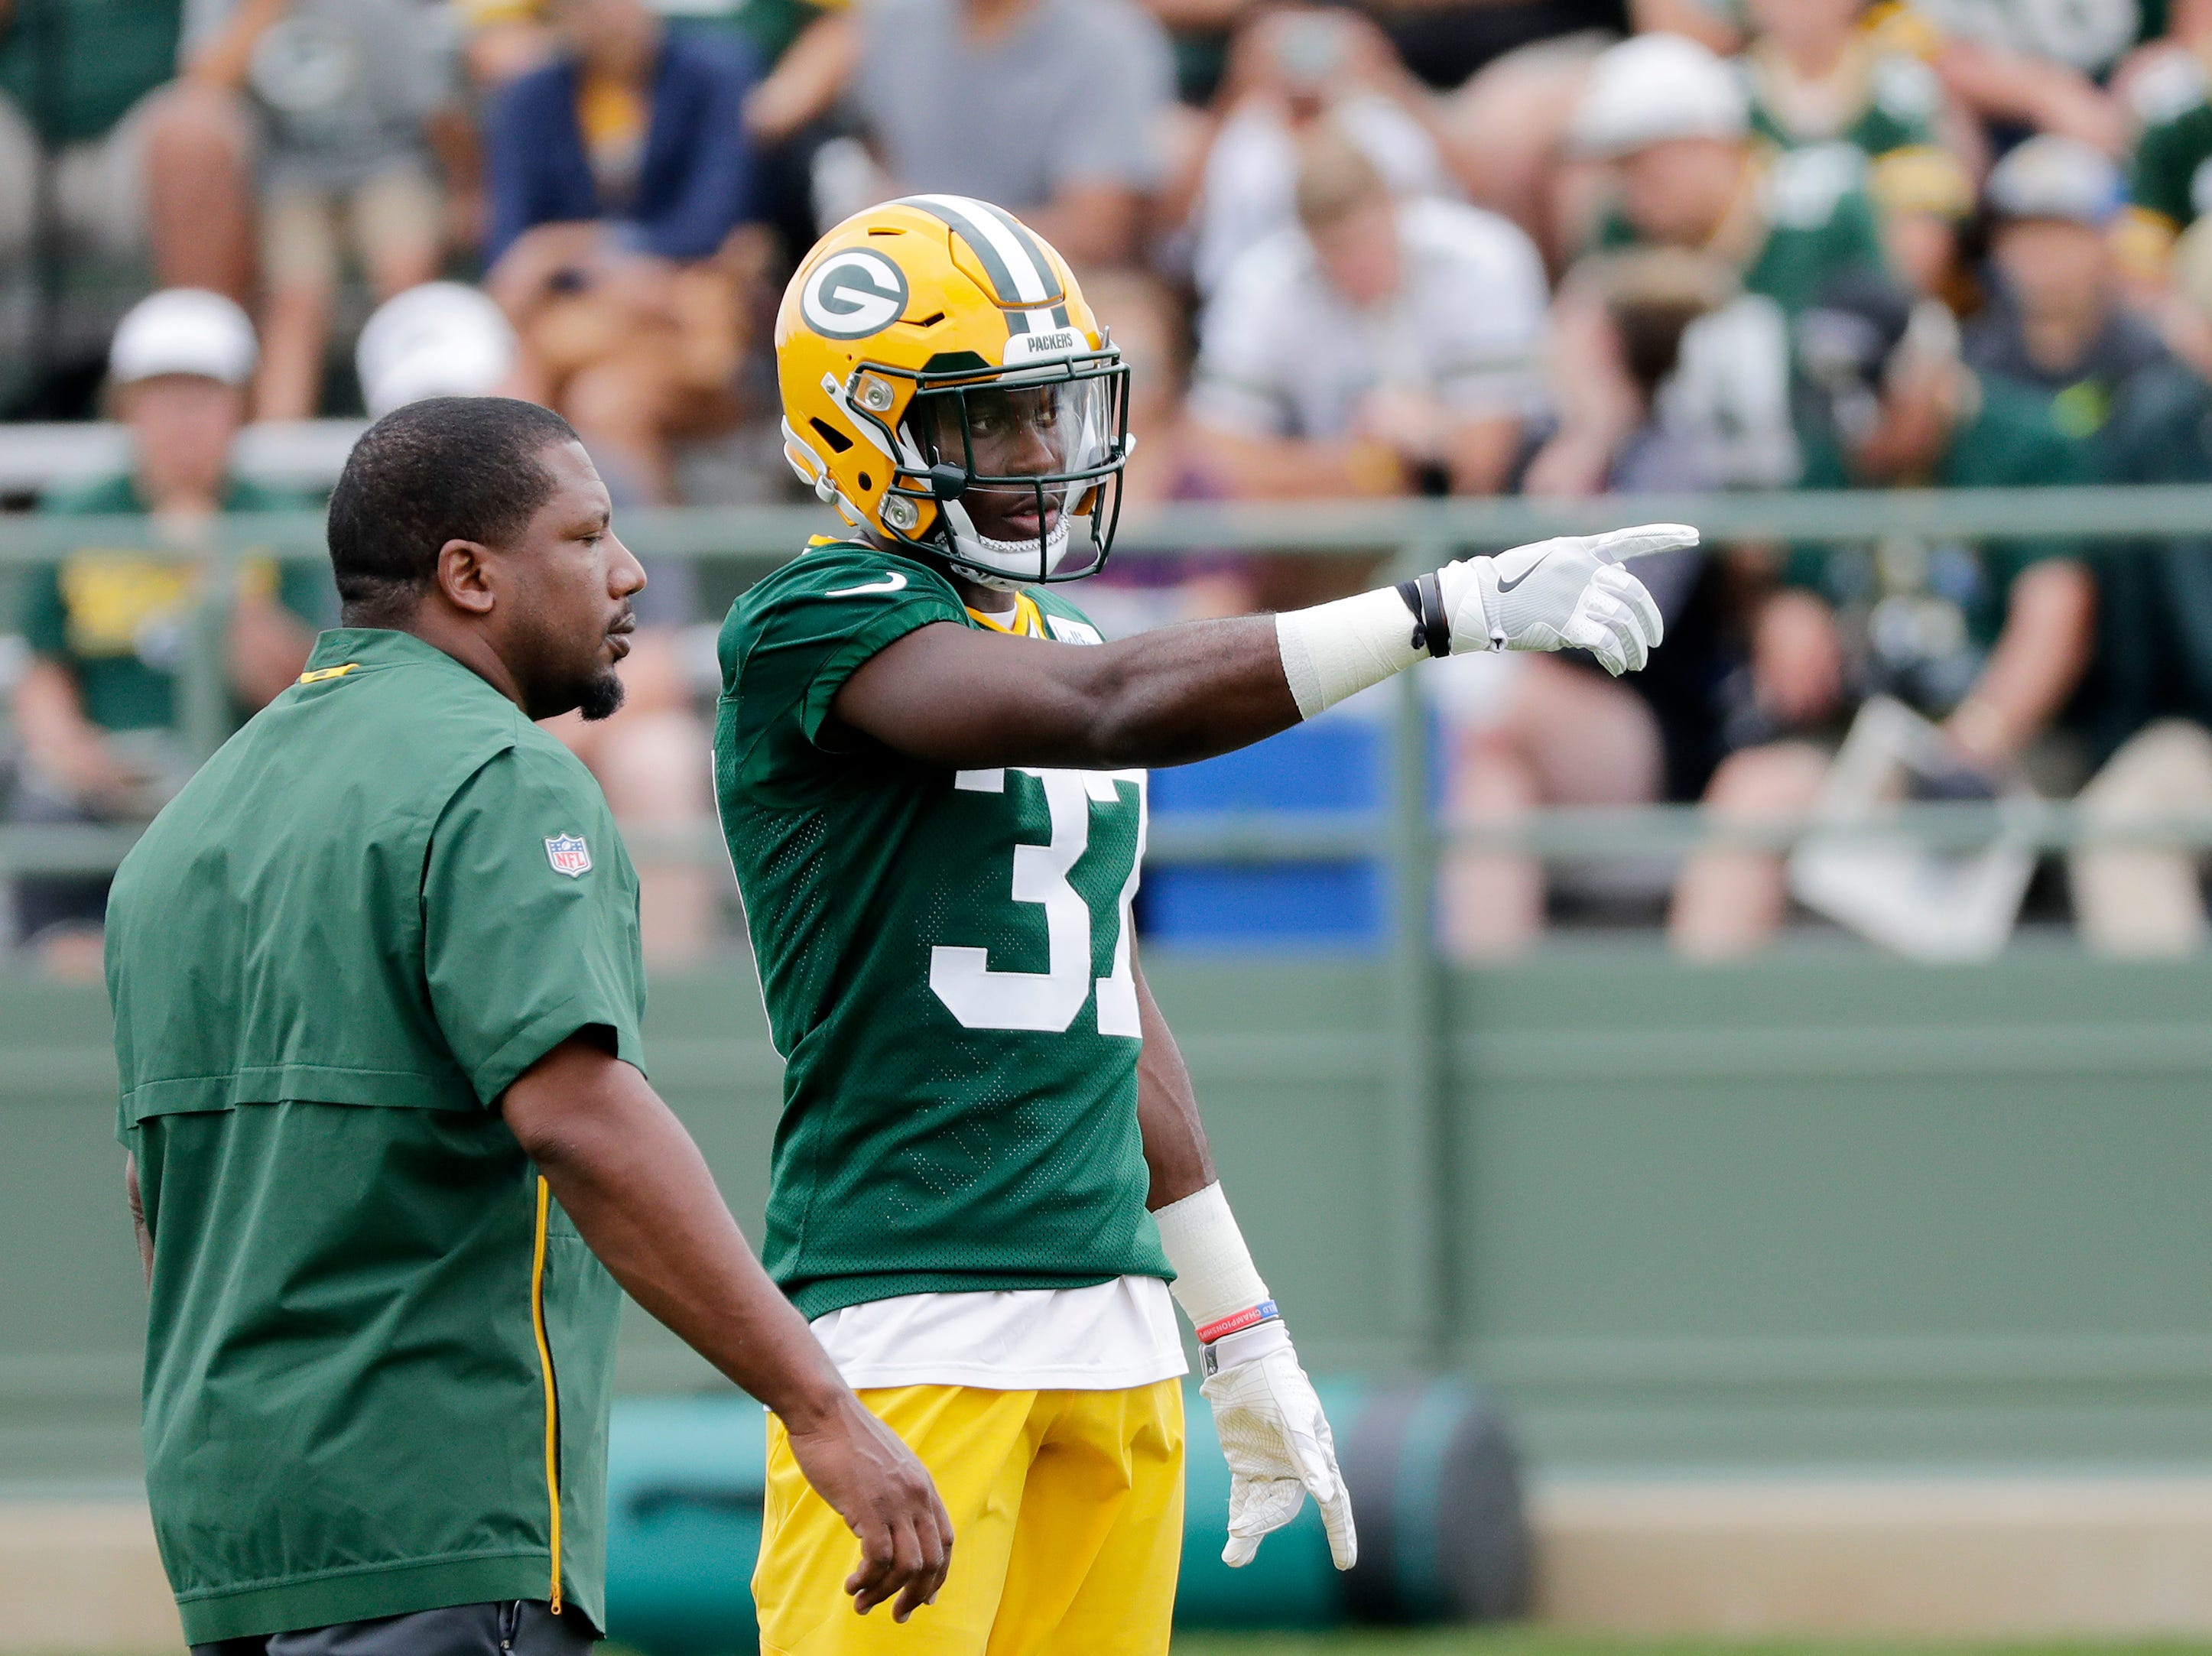 Green Bay Packers cornerback Josh Jackson (37) works on a drill during training camp practice at Ray Nitschke Field on Thursday, July 26, 2018 in Ashwaubenon, Wis. 